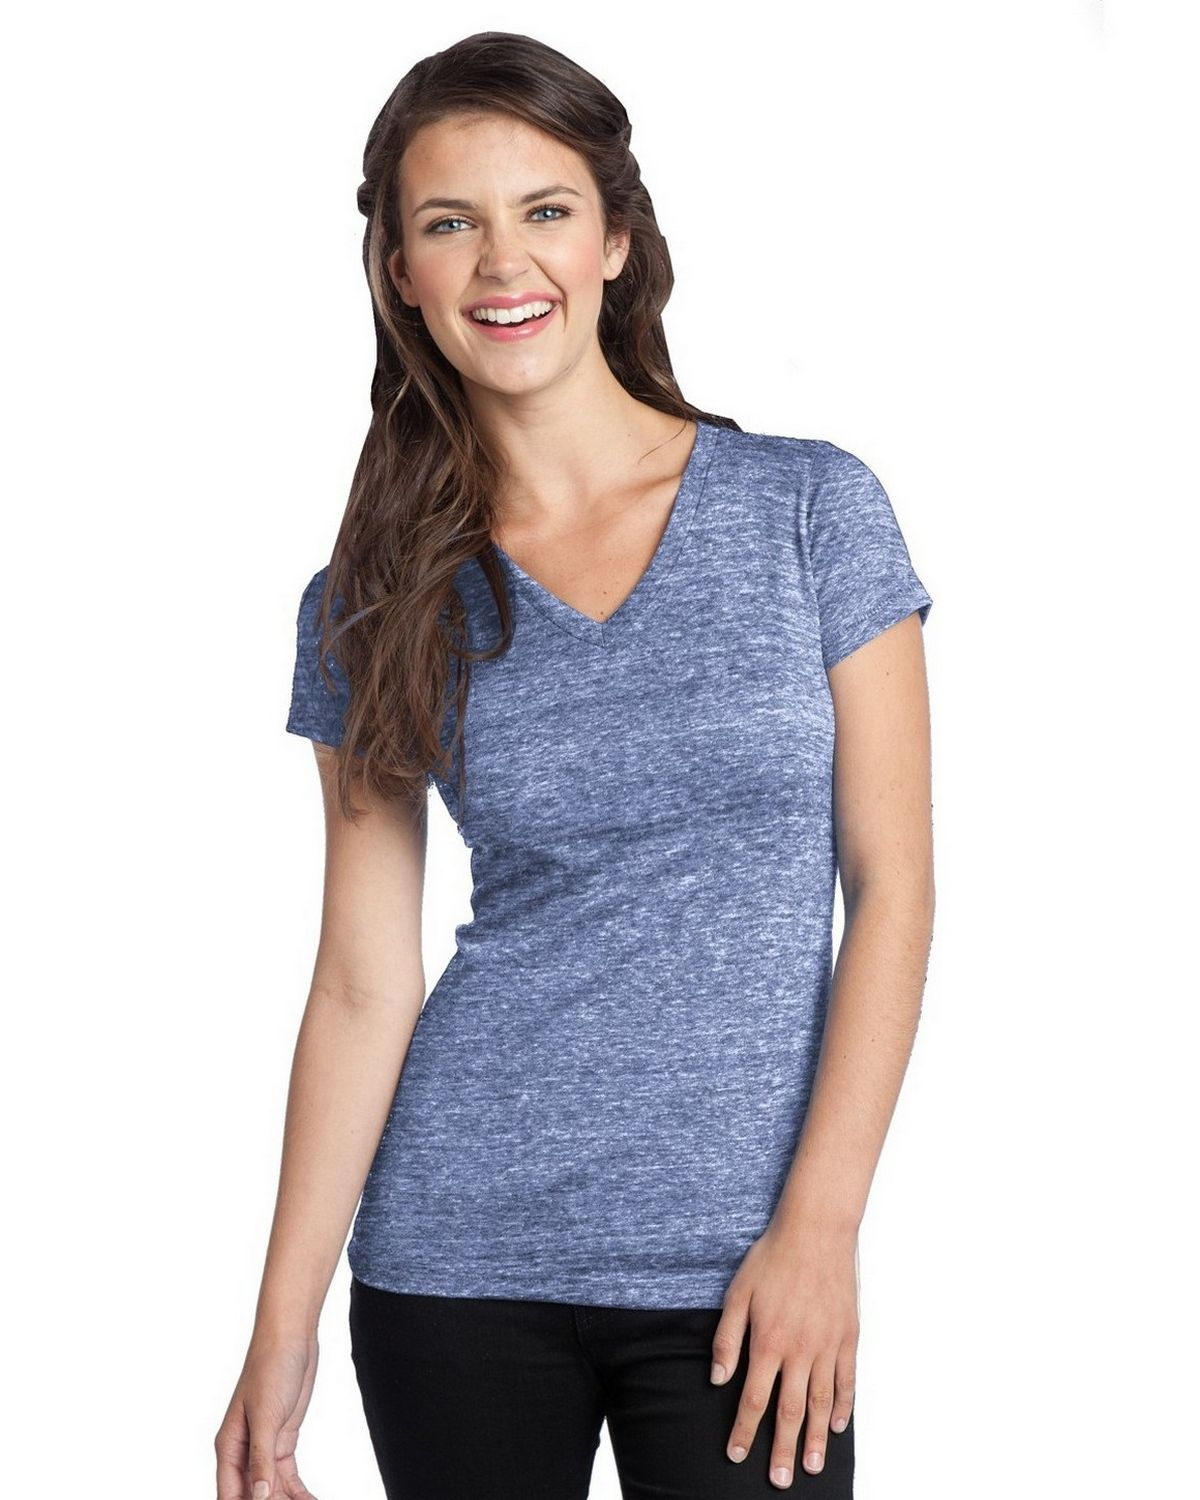 District DT242V Tri-Blend V-Neck Tee - Navy Heather - XXL DT242V